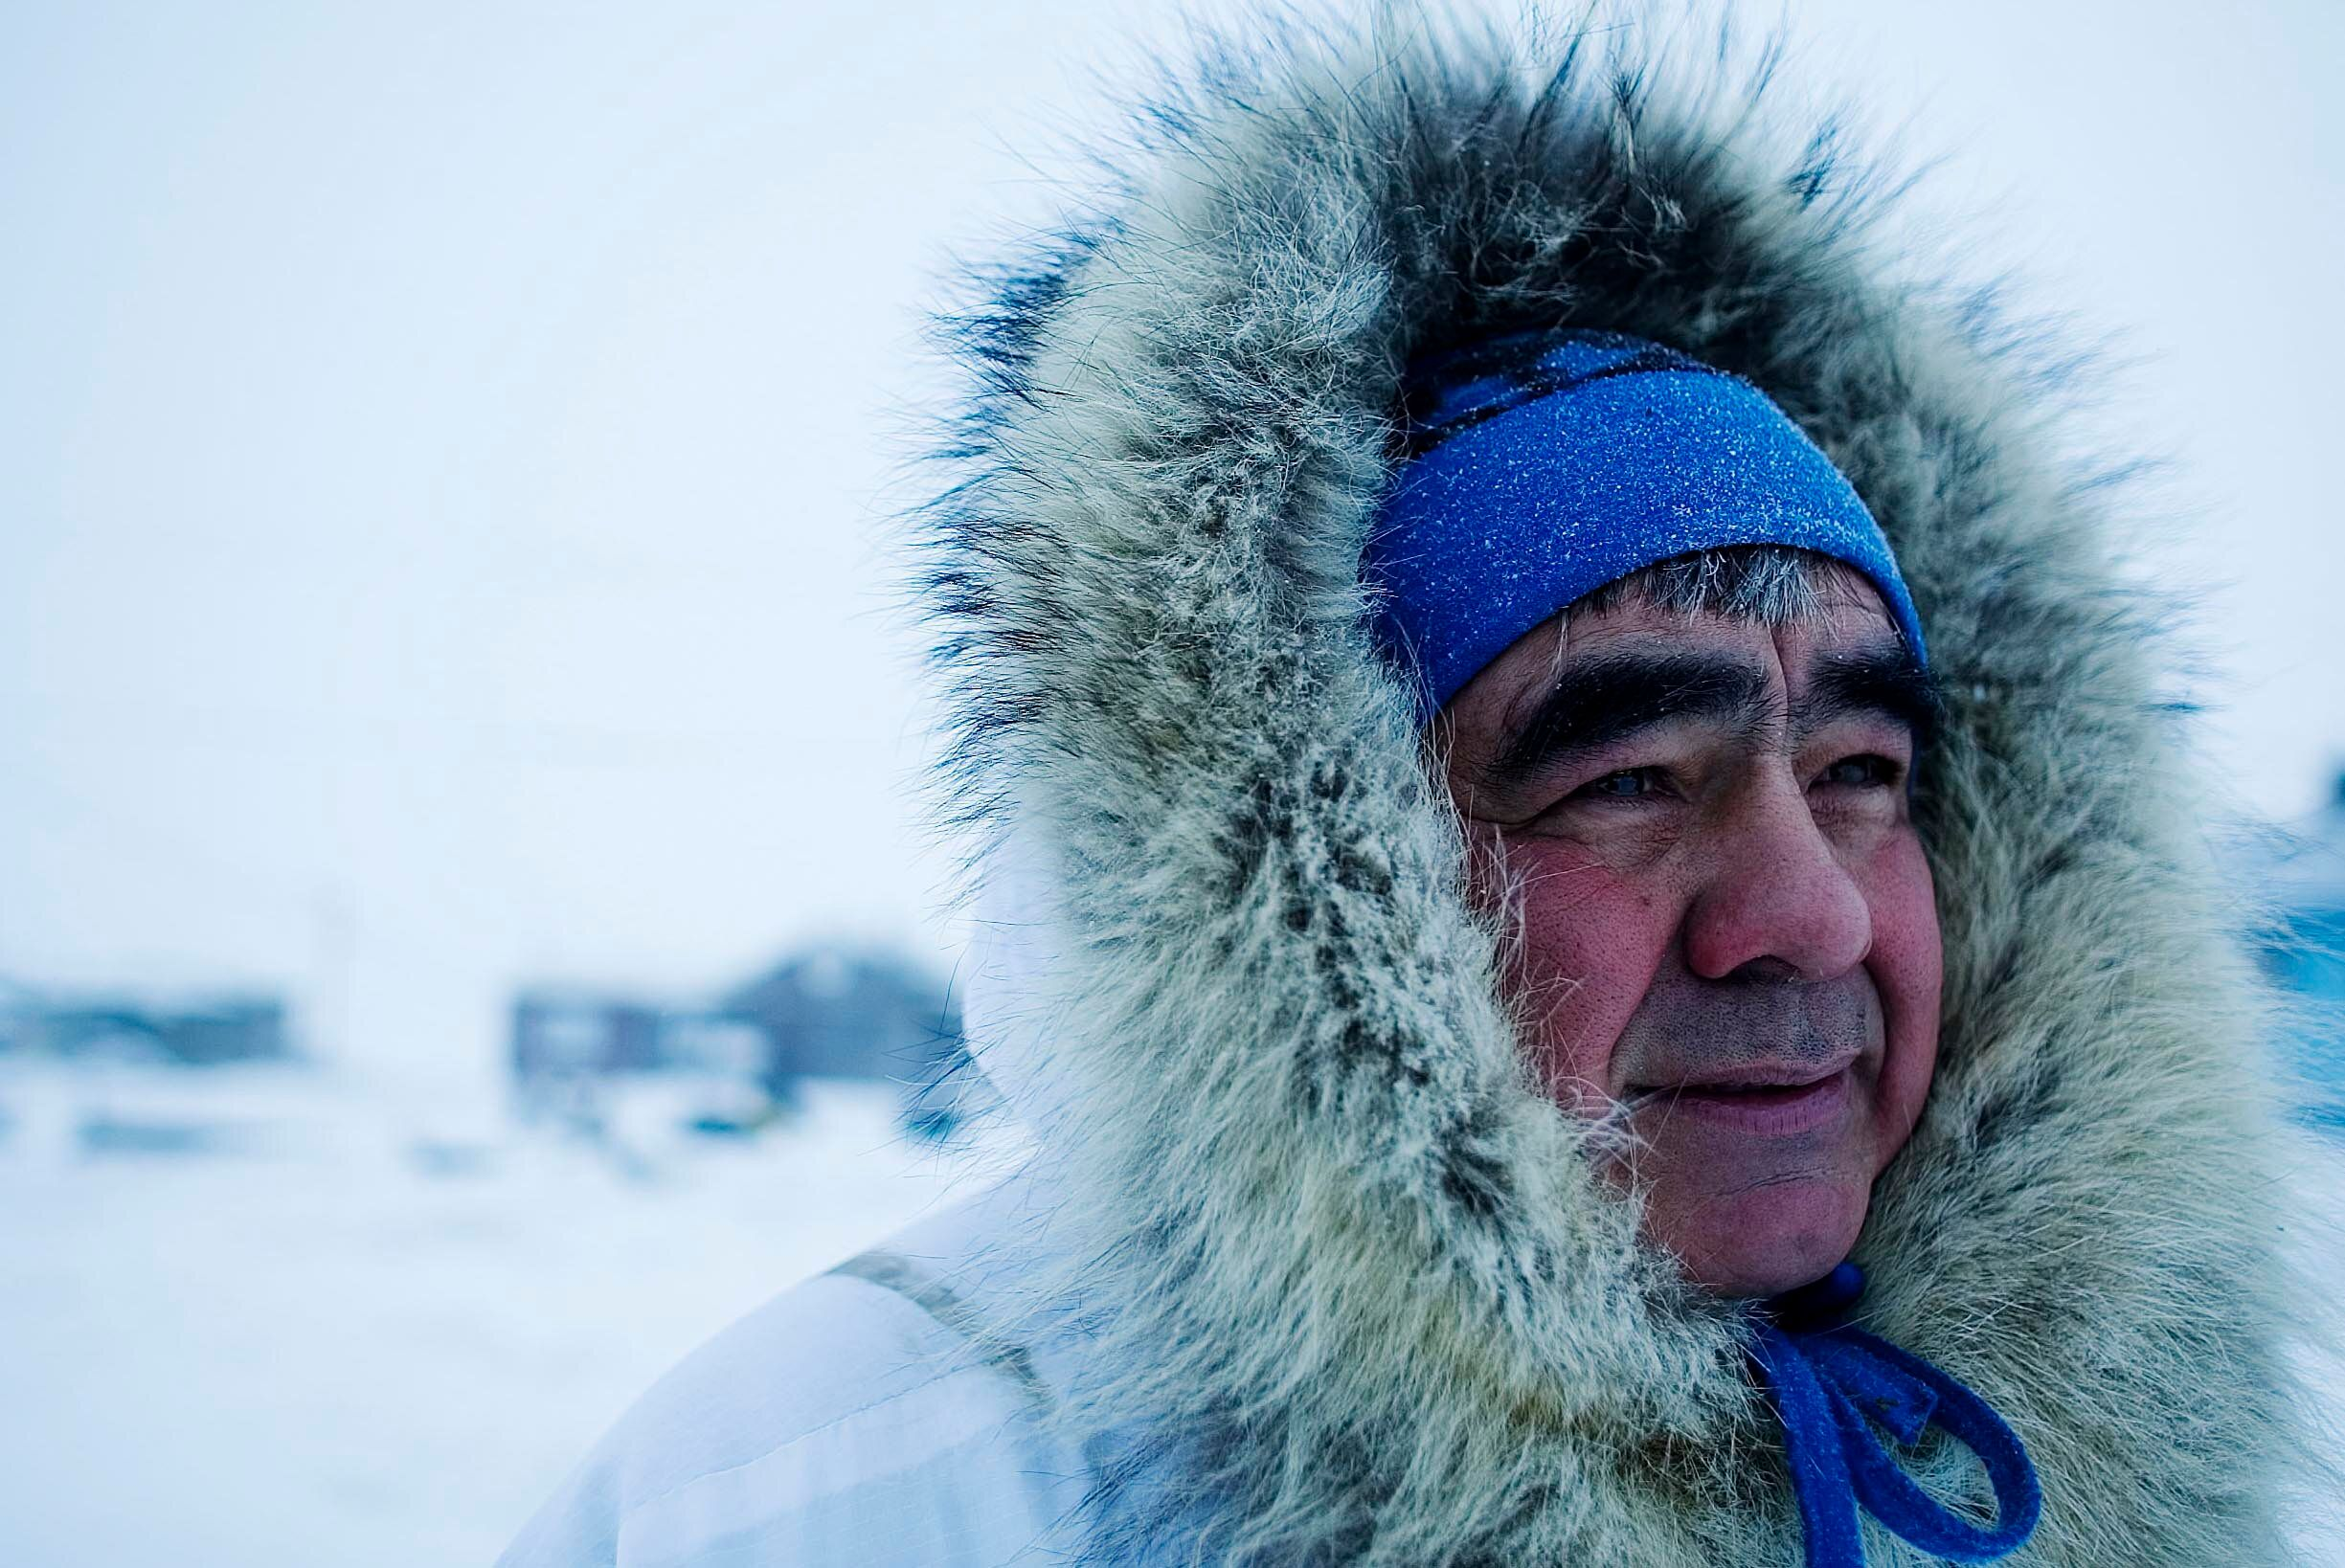 Robert Thompson has been guiding polar bear tours in Kaktovik, Alaska, for two decades. The business supports the limited loc